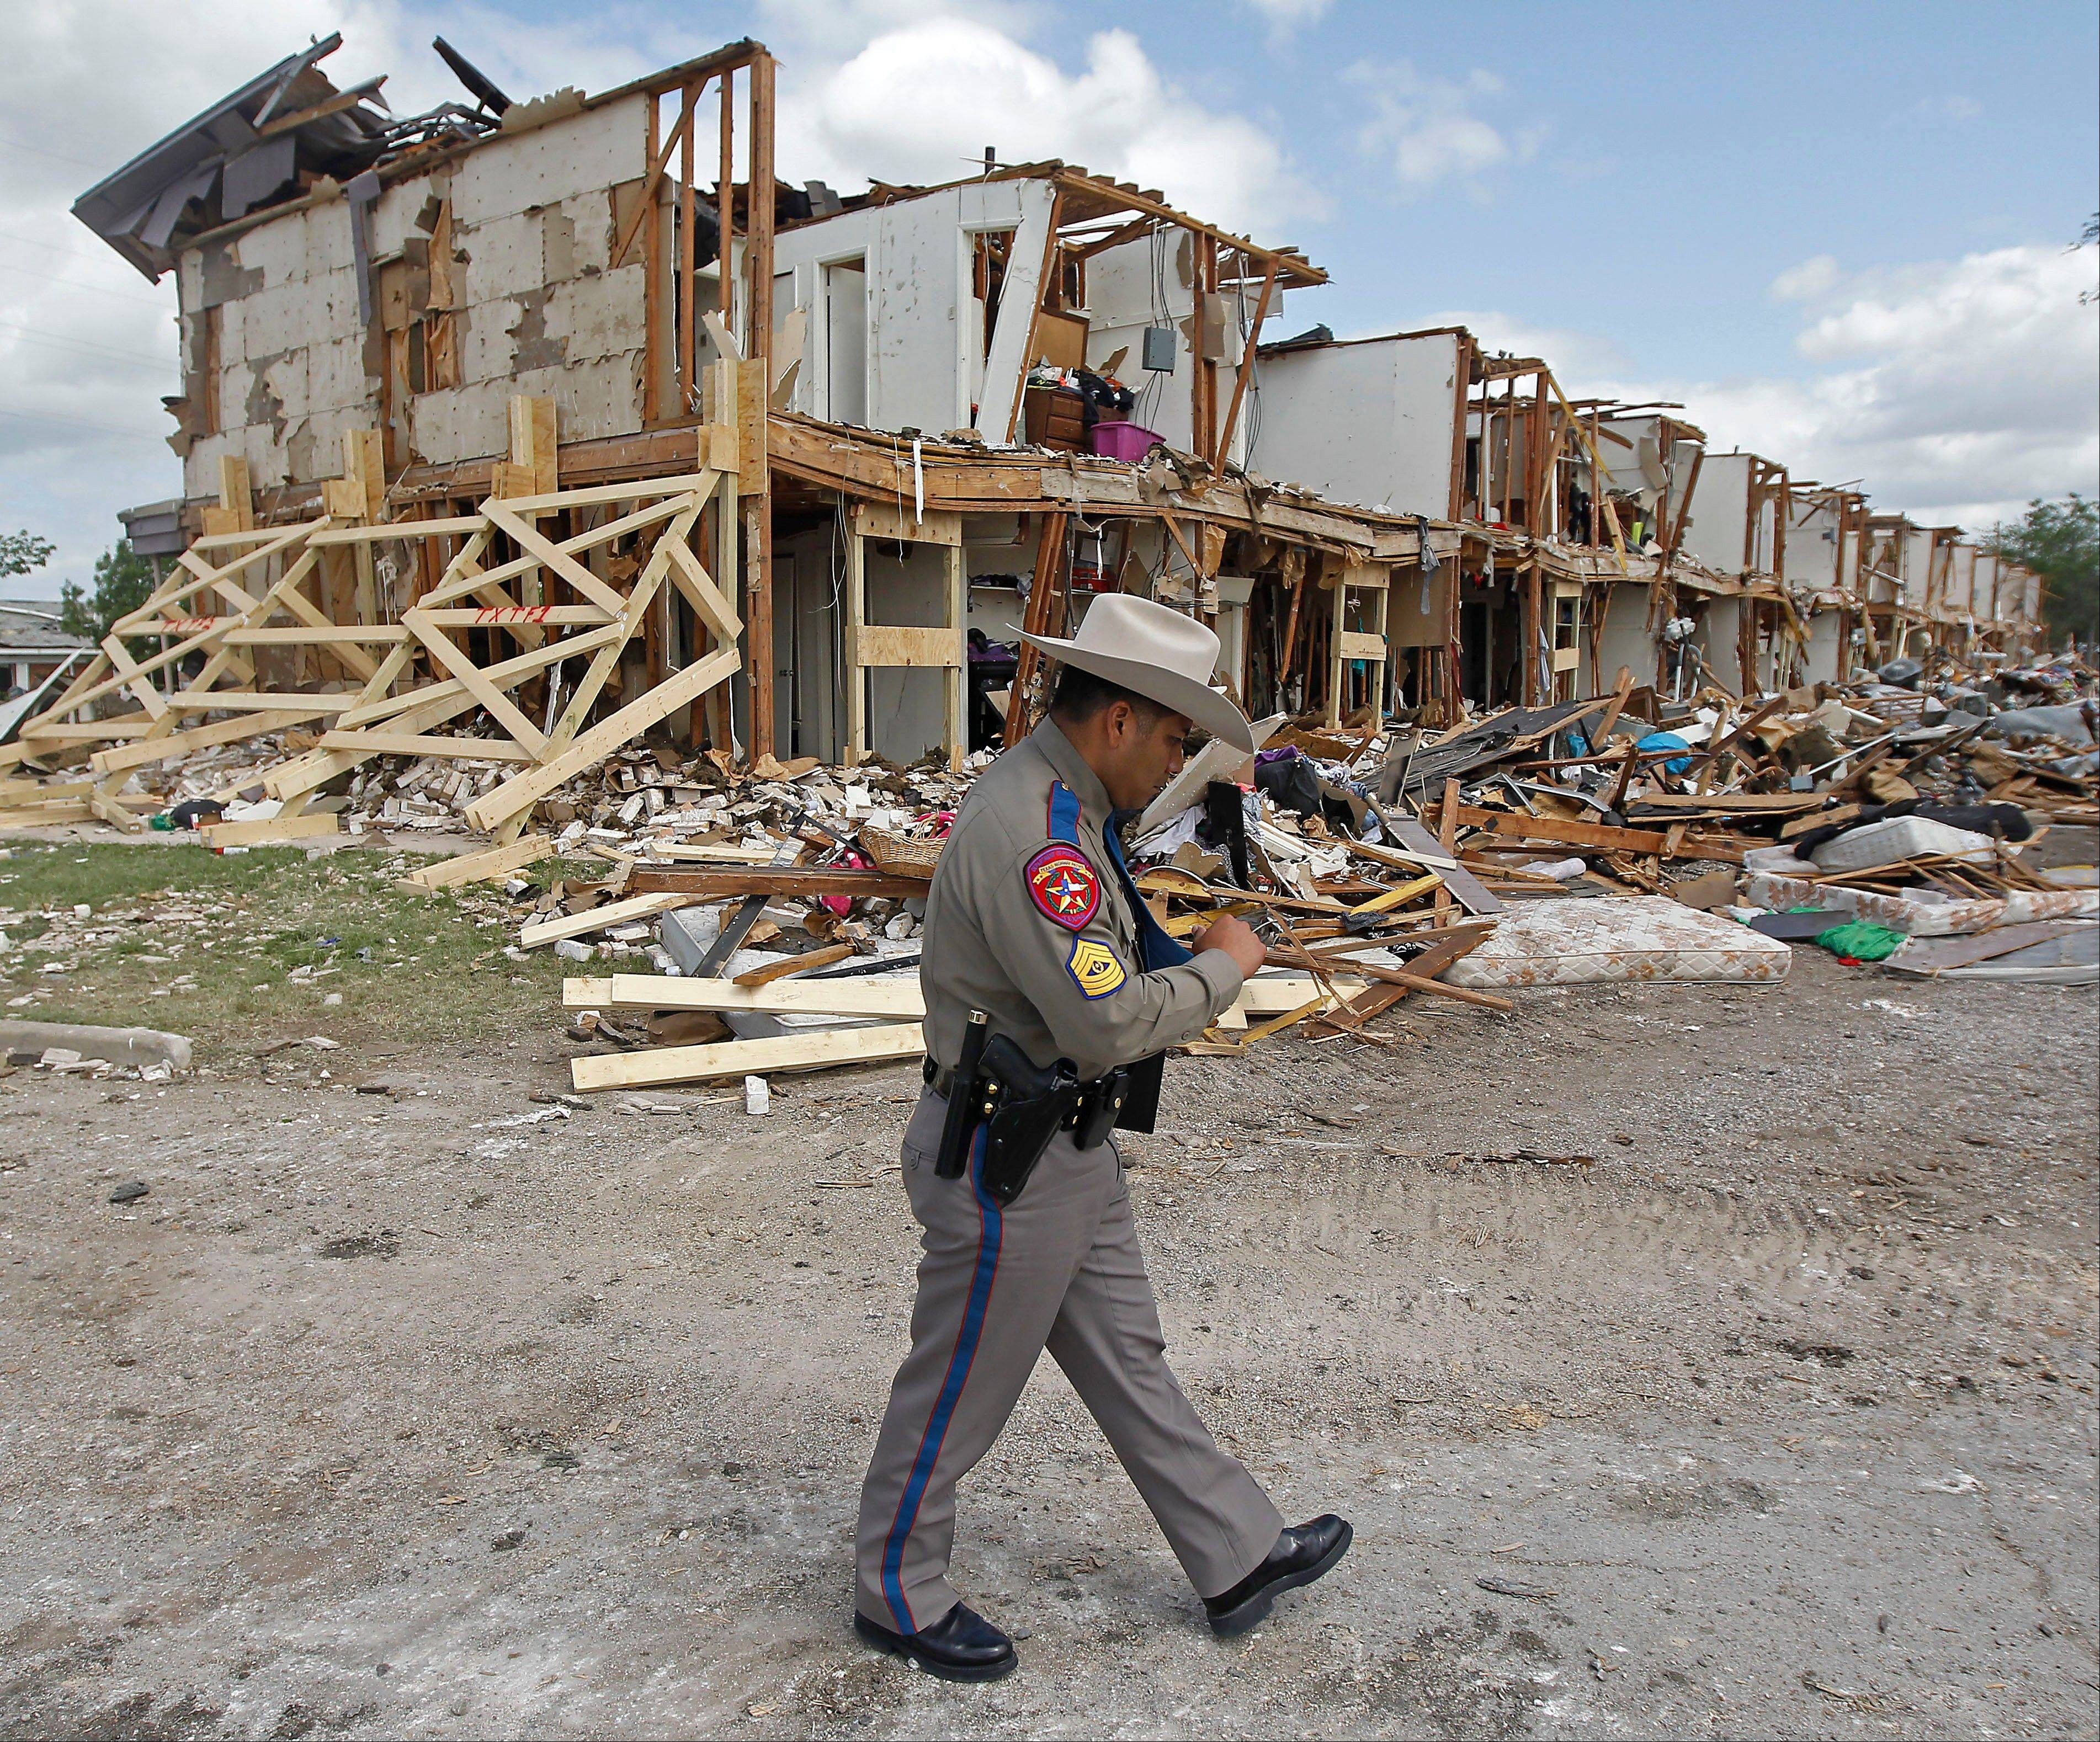 Texas Department of Public Safety Sgt. Jason Reyes walks past a damaged apartment complex, Sunday, April 21, 2013, four days after an explosion at a fertilizer plant in West, Texas. The massive explosion at the West Fertilizer Co. Wednesday night killed 14 people and injured more than 160.